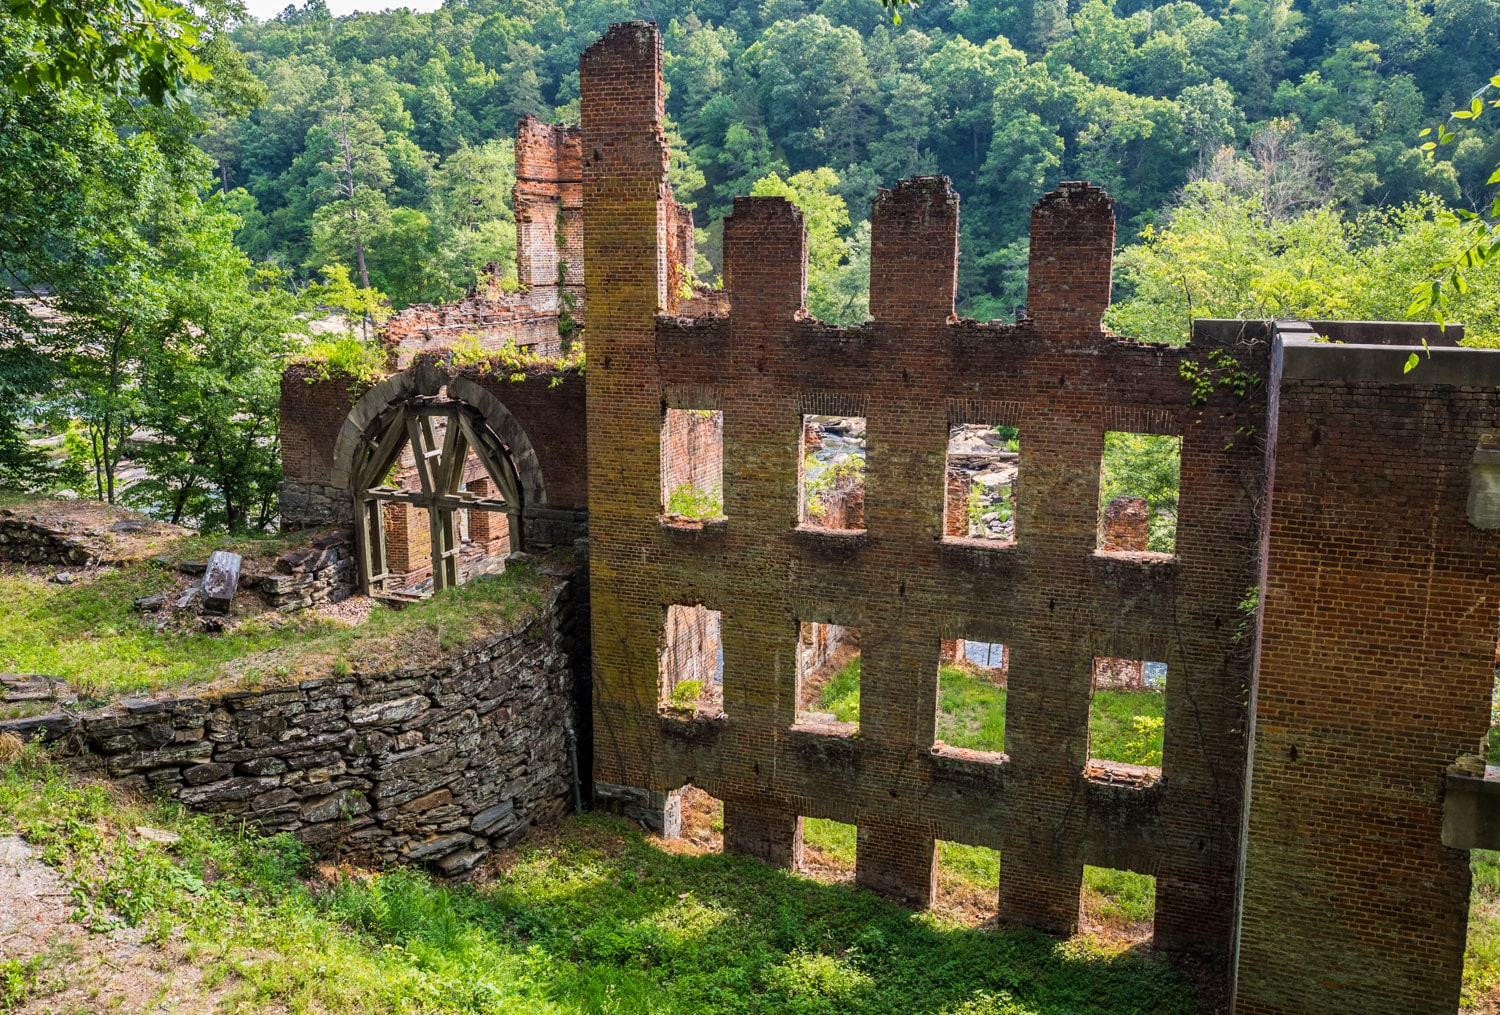 New Manchester Mill Ruins at Sweetwater Creek State Park